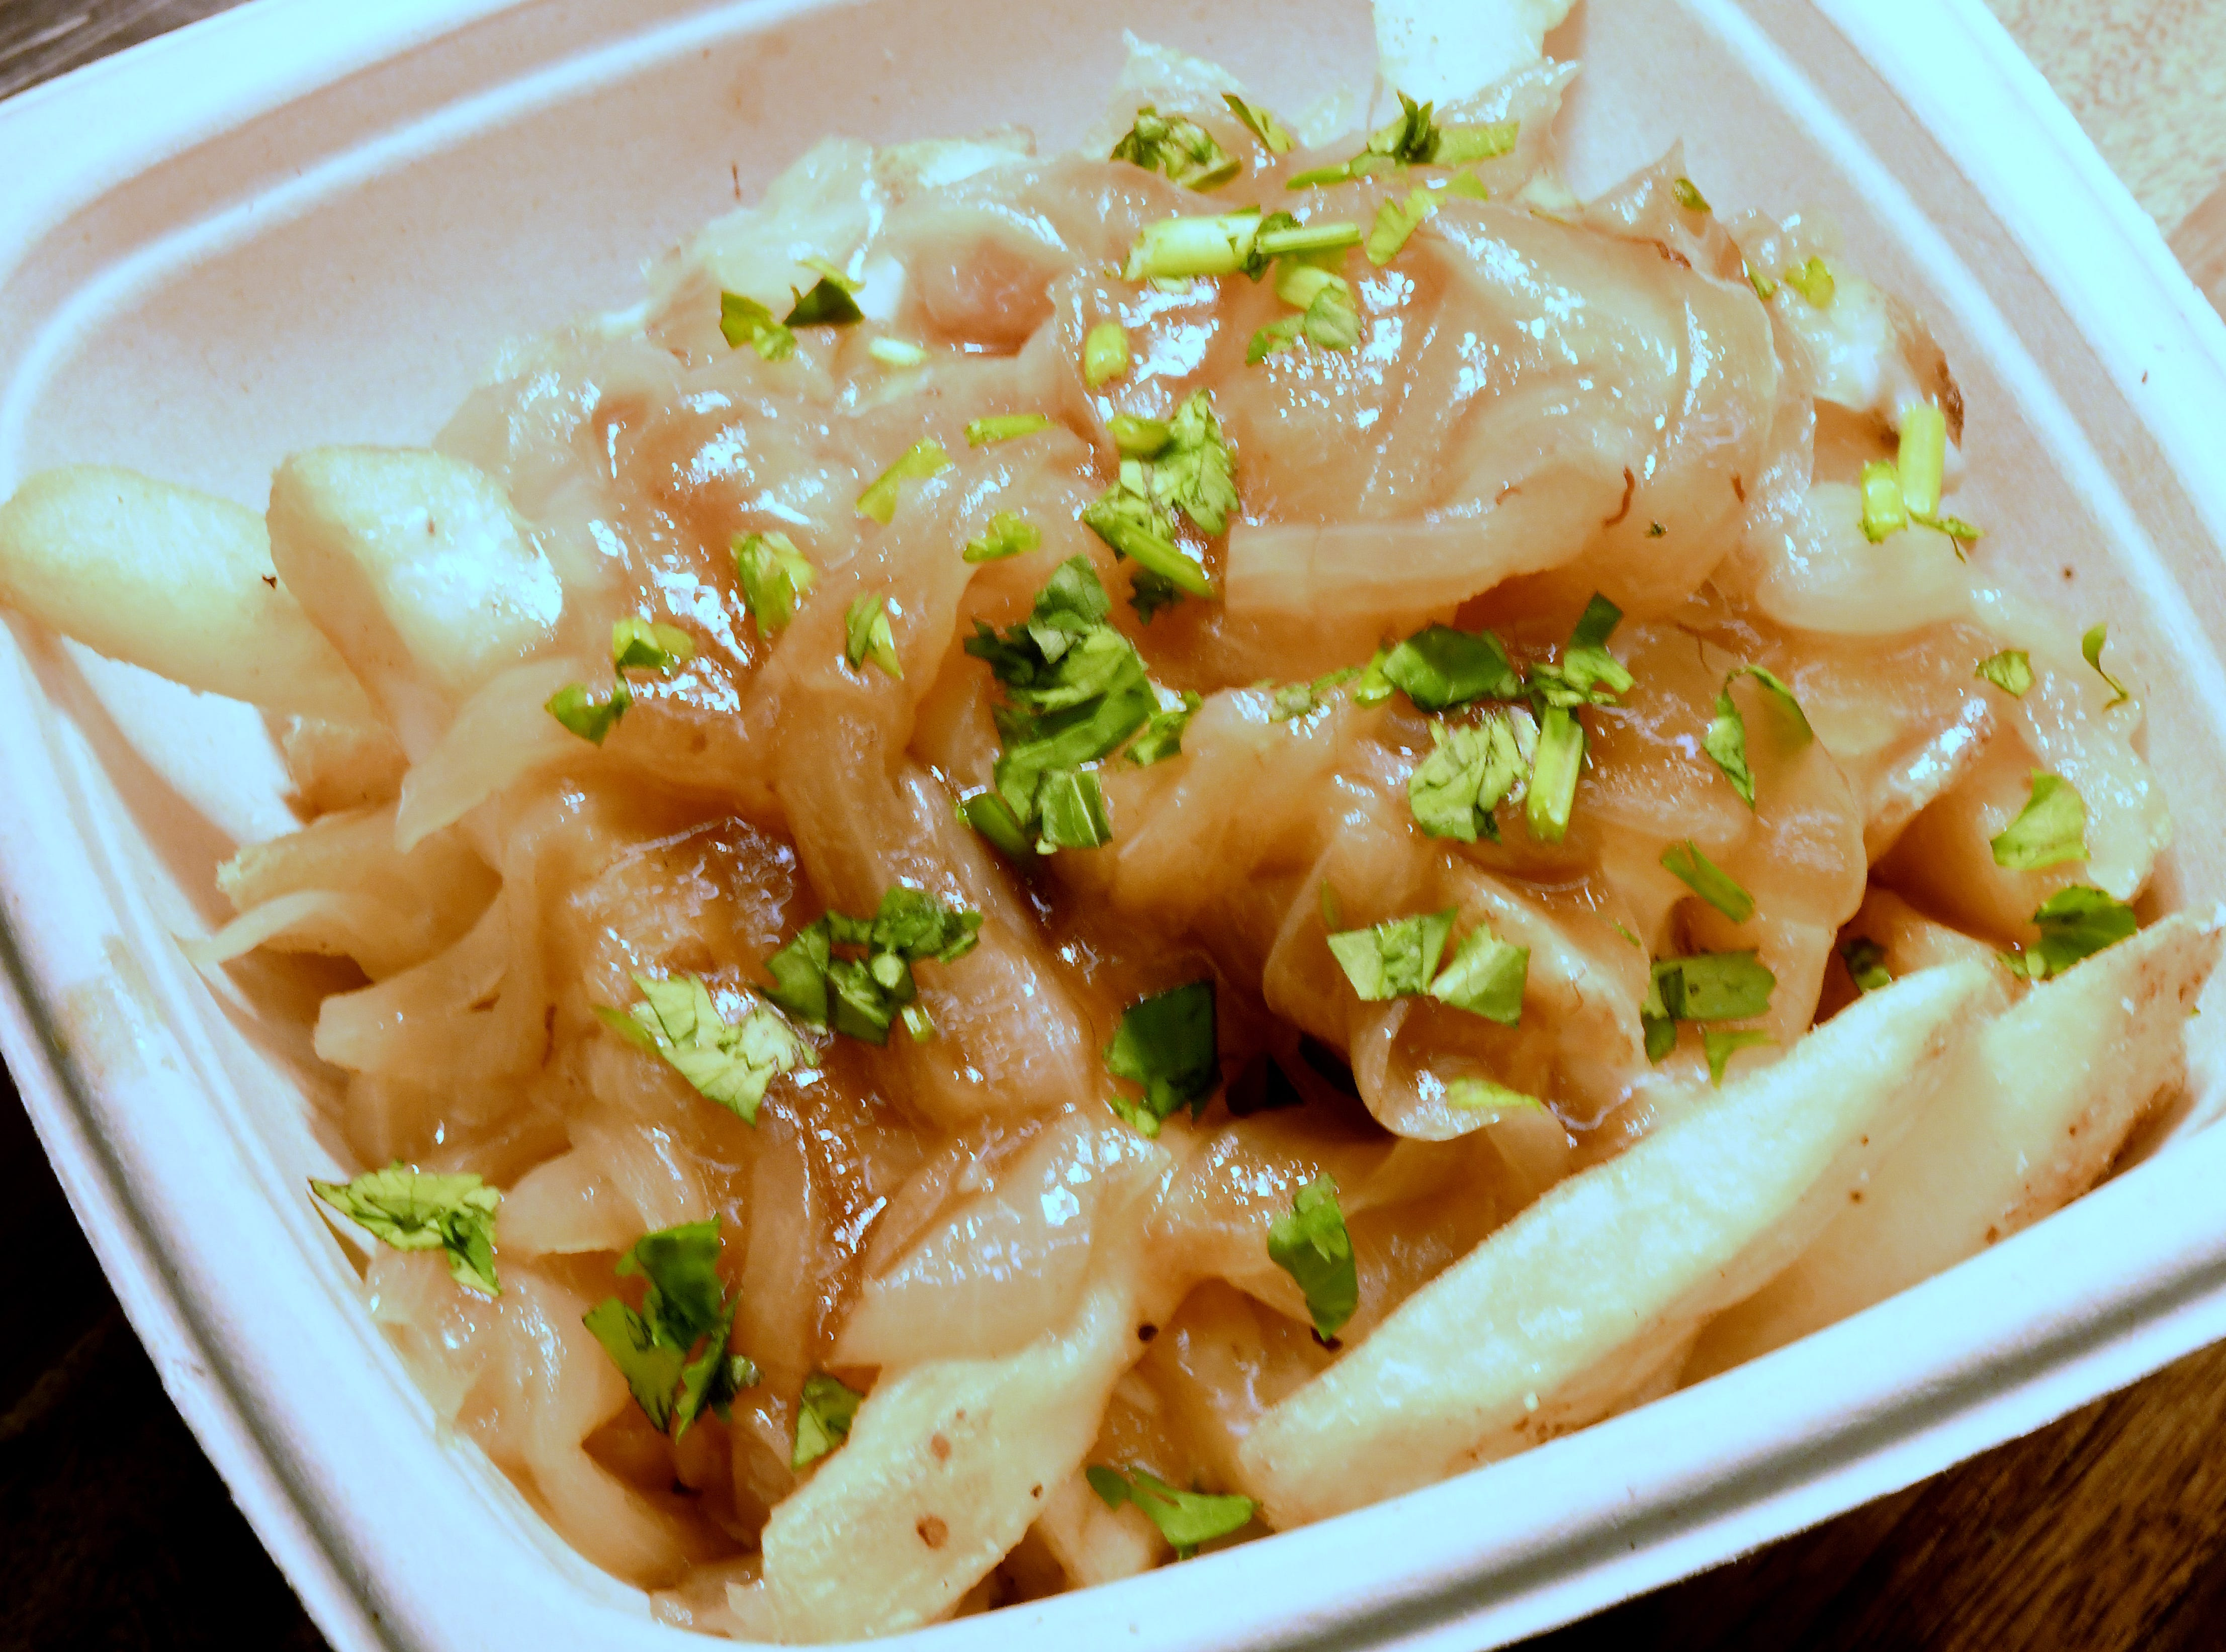 """""""French Onions topped Fries"""" consisting of crispy French fries smothered in Swiss cheese and caramelized onions and drizzled with a tangy zip sauce."""